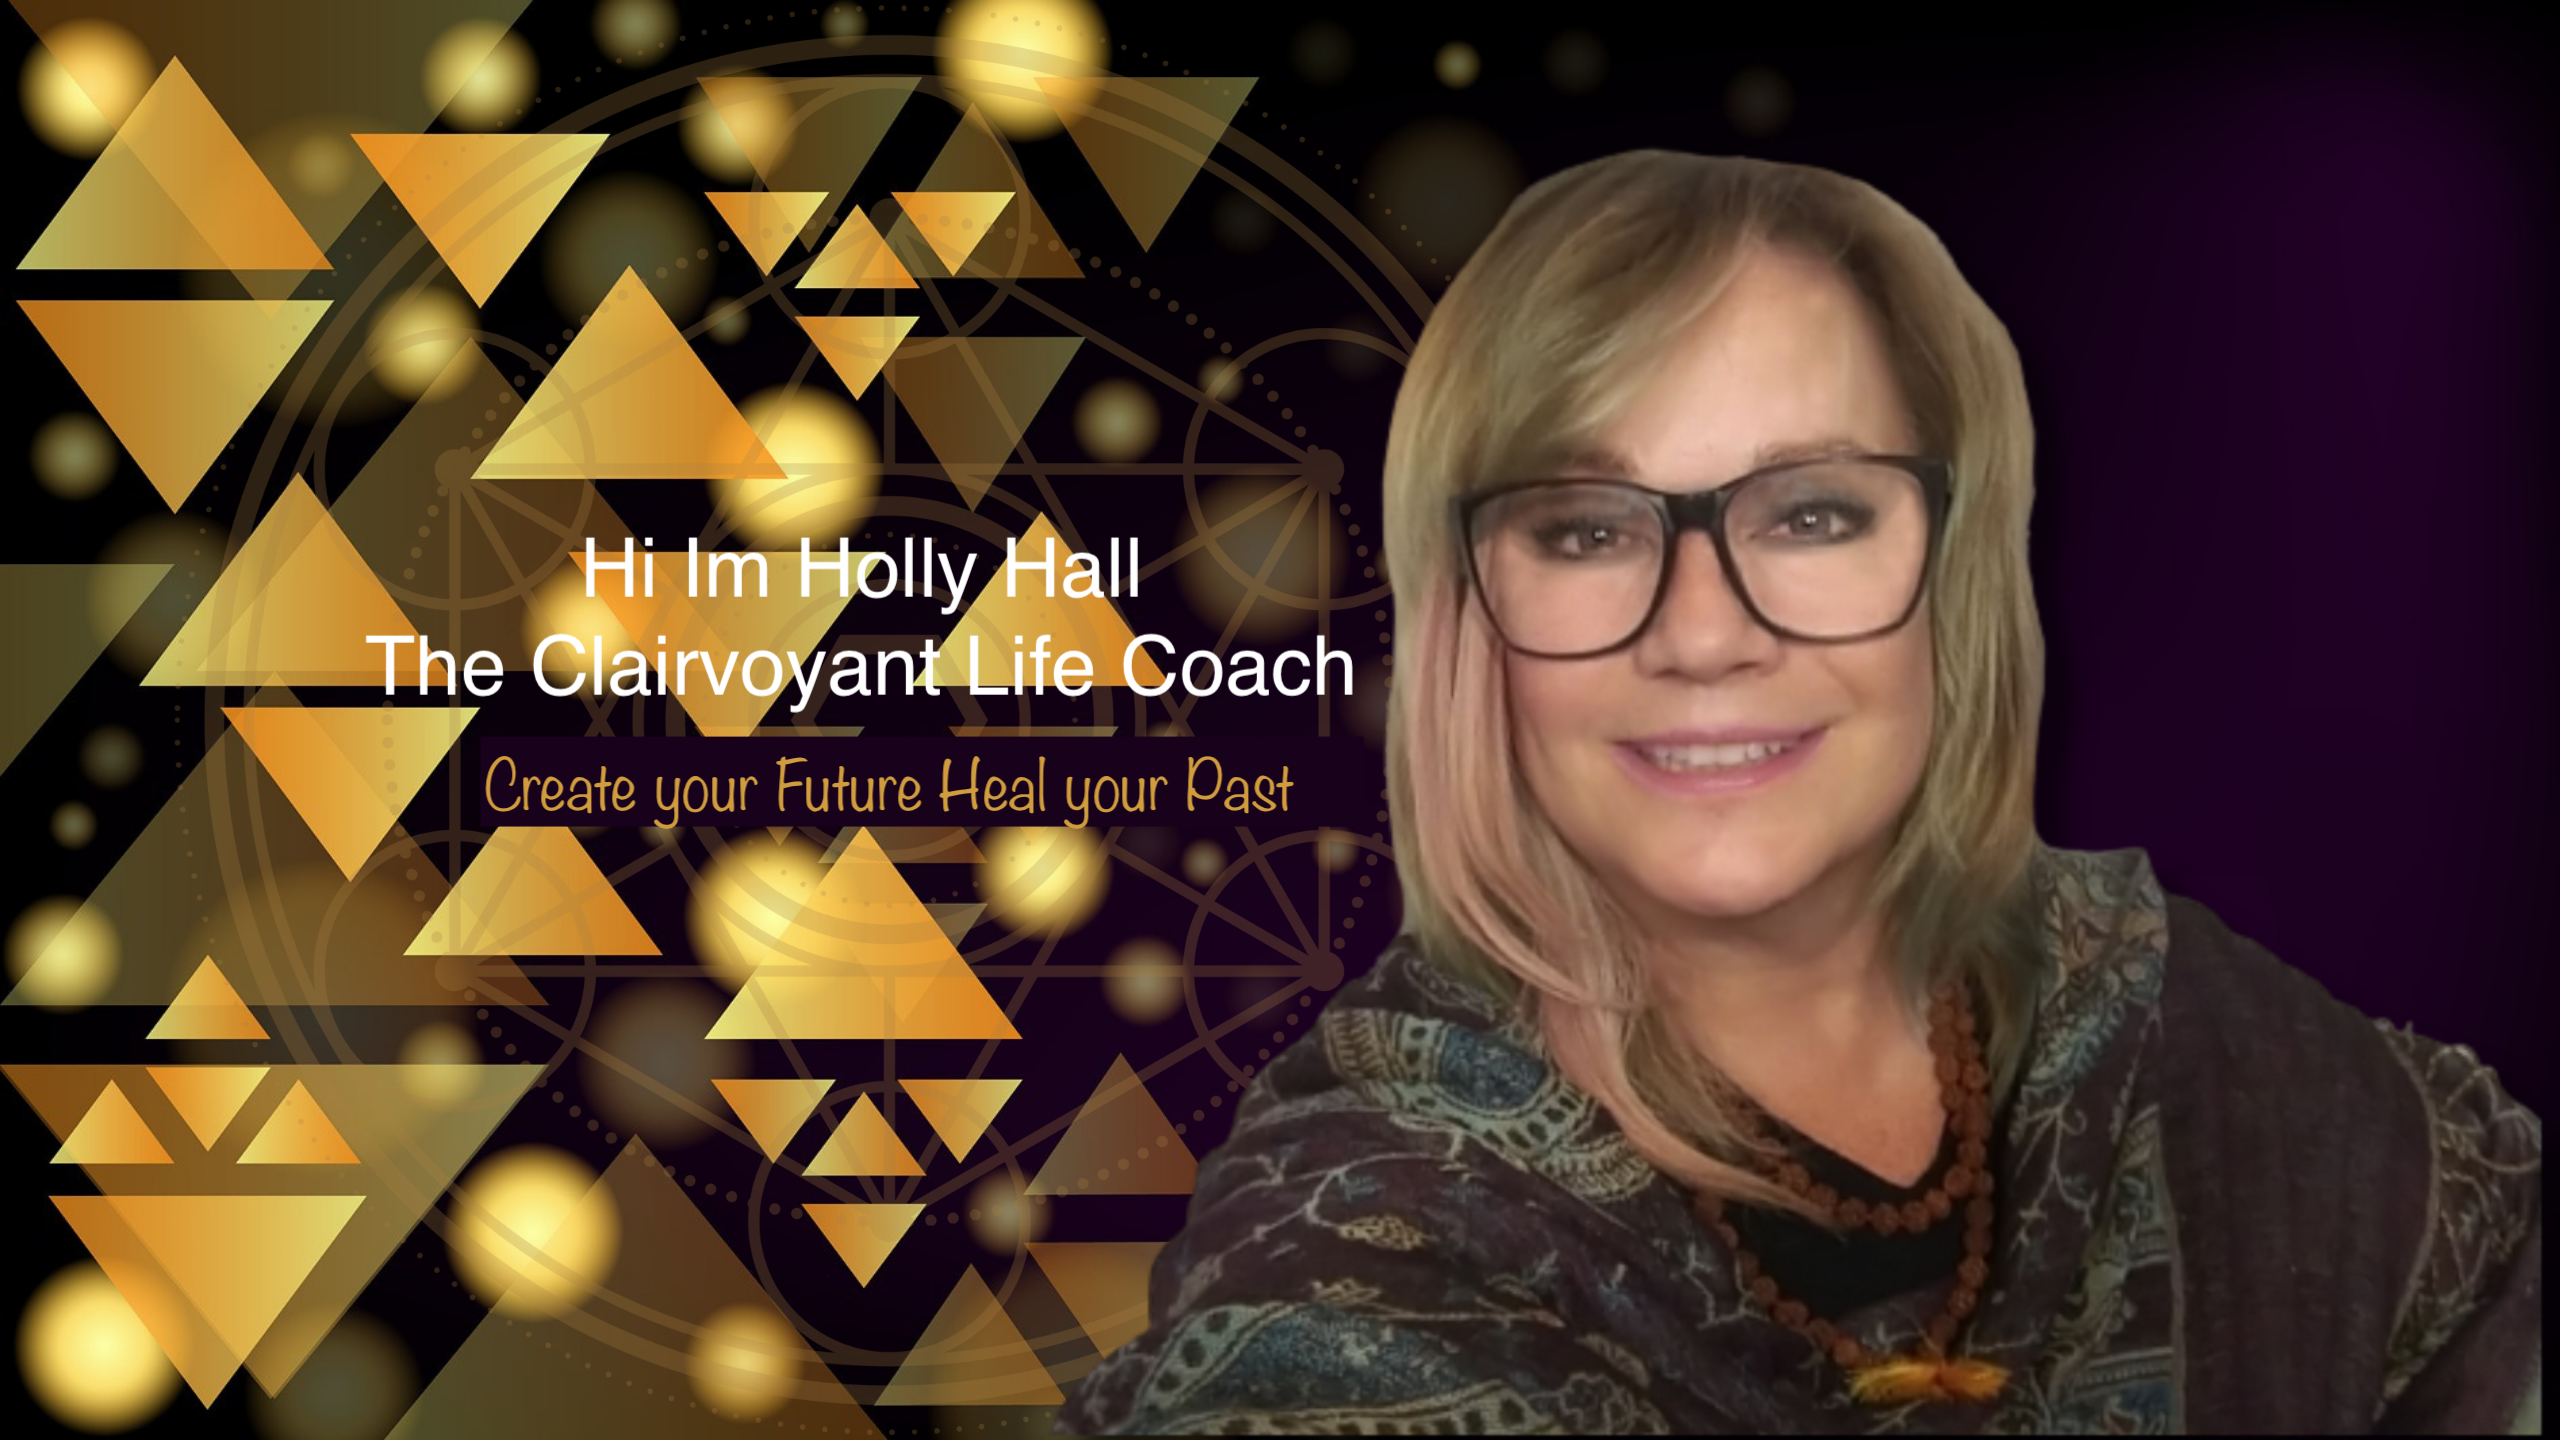 It's time to Ask Holly Hall